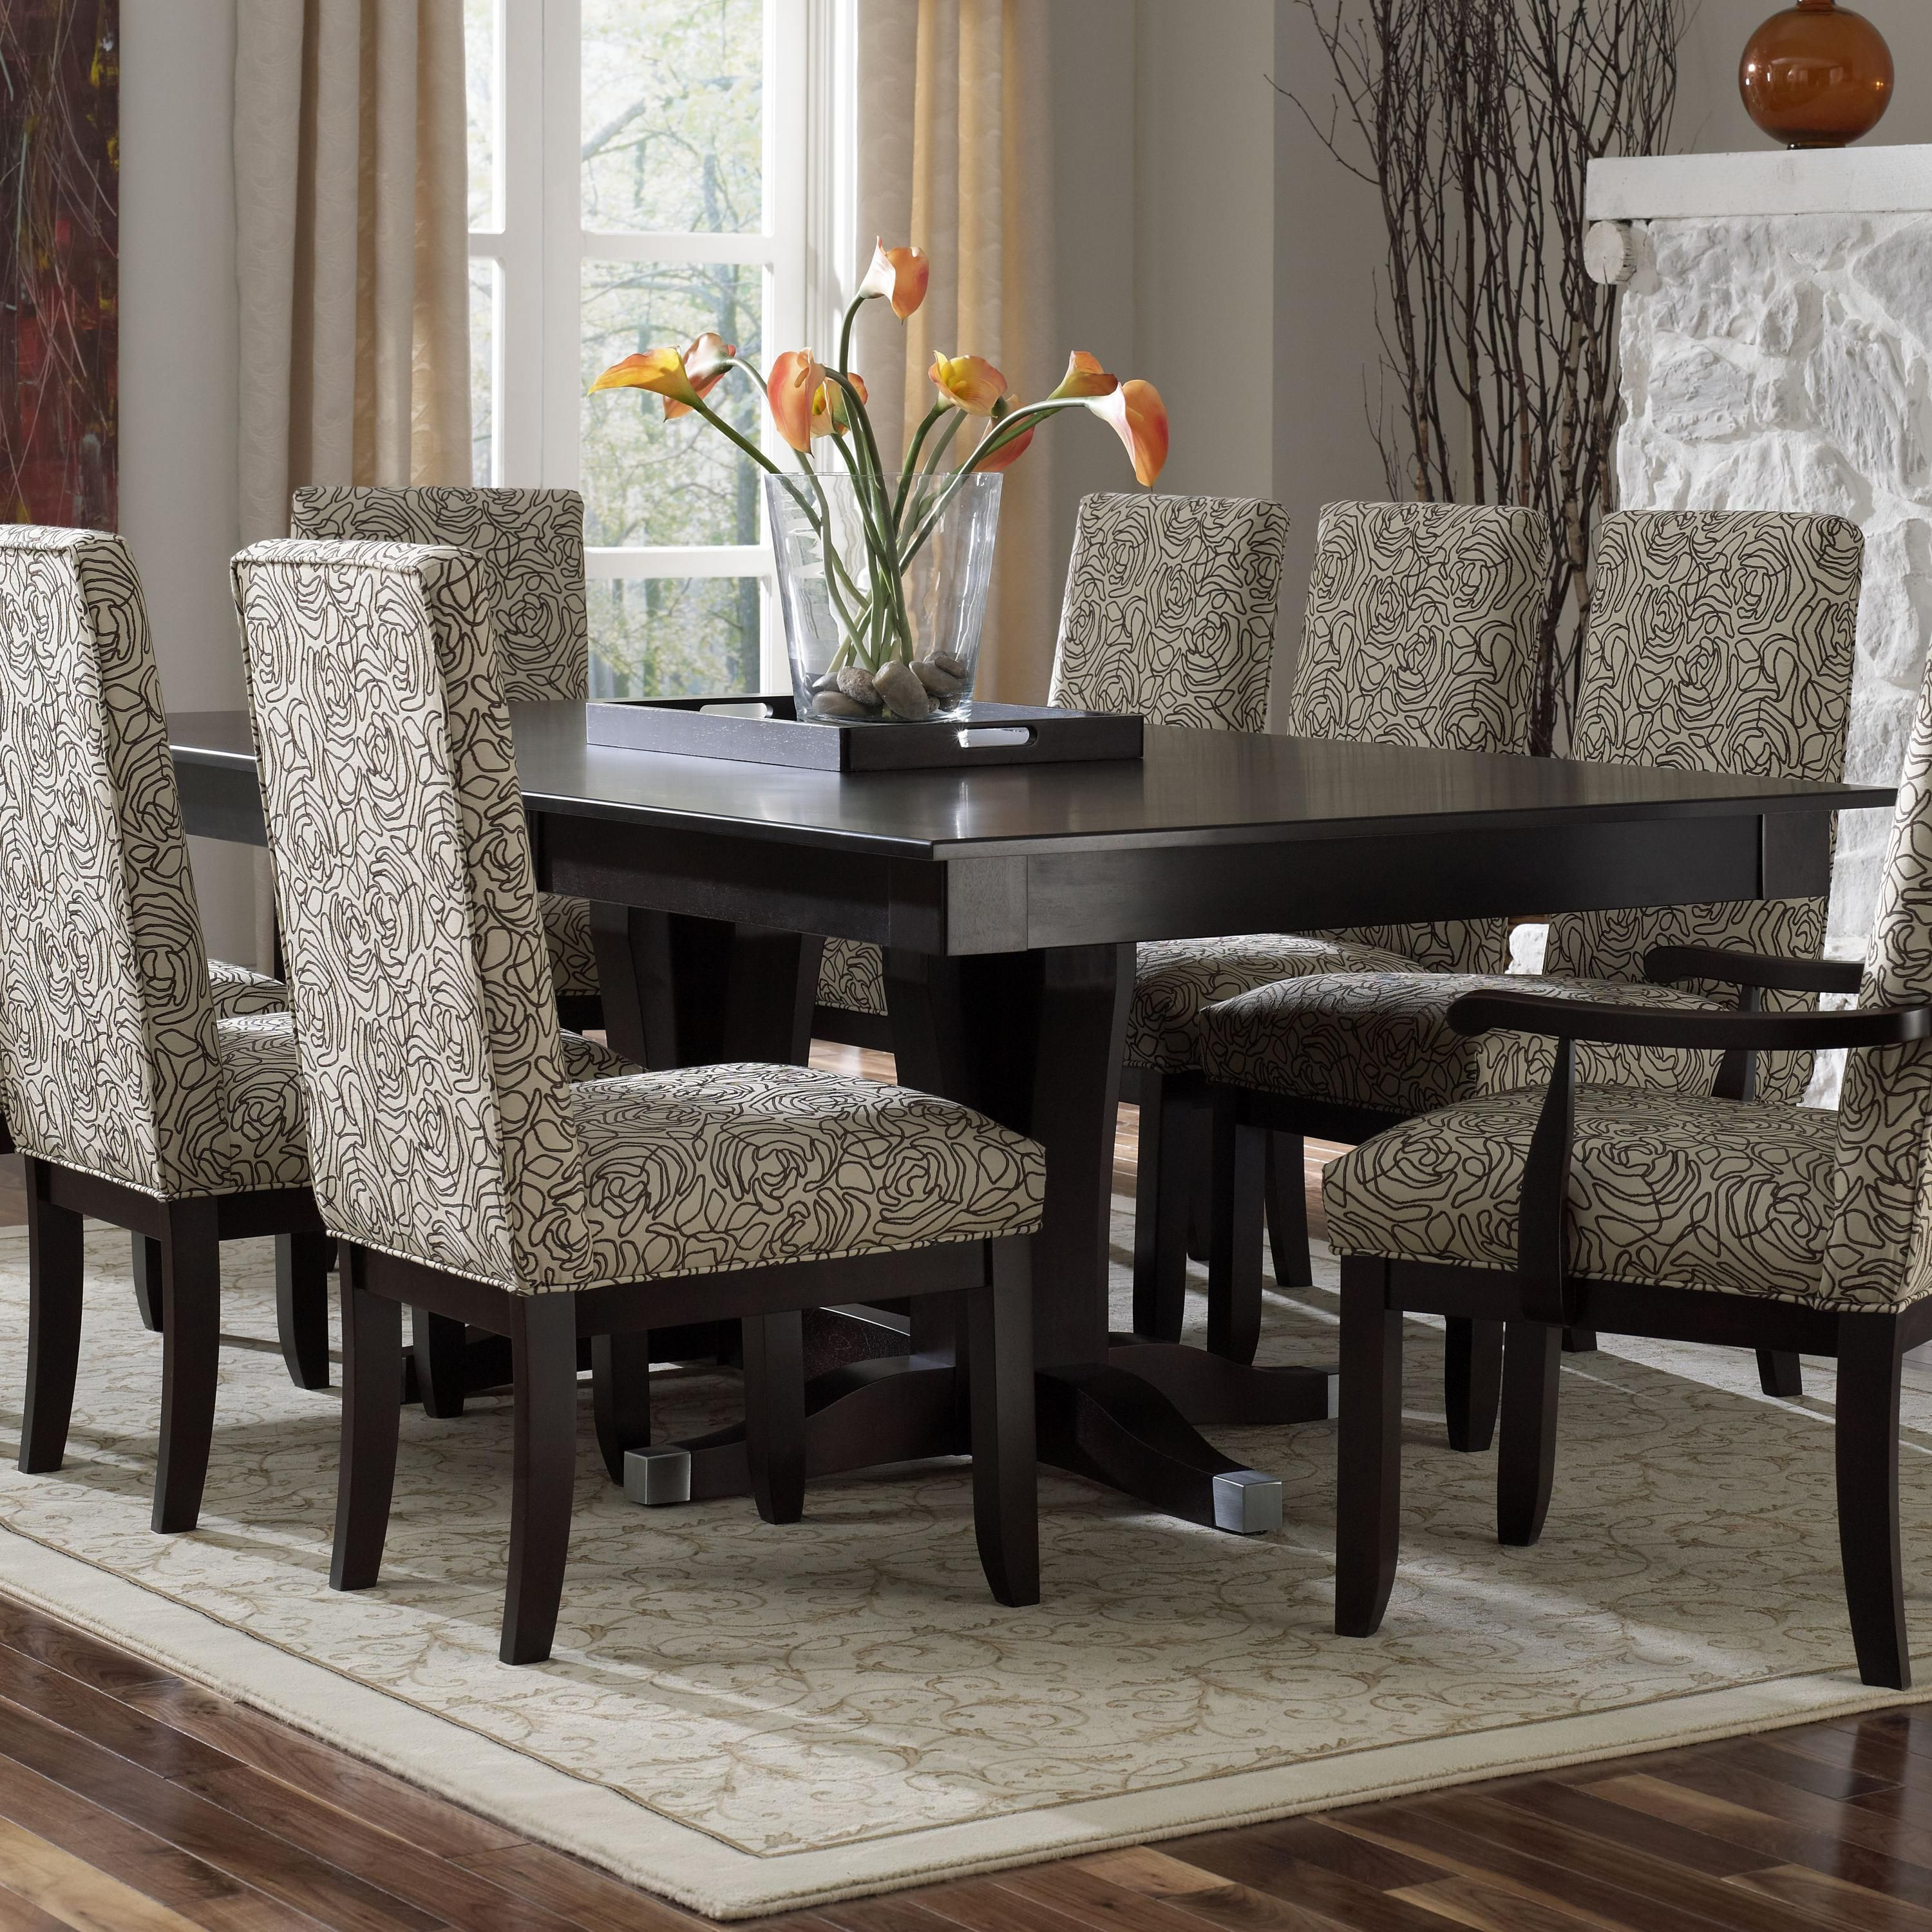 Charming And Cheap Decor Ideas Formal Dining Room: Elegant Dining Room, Formal Dining Room